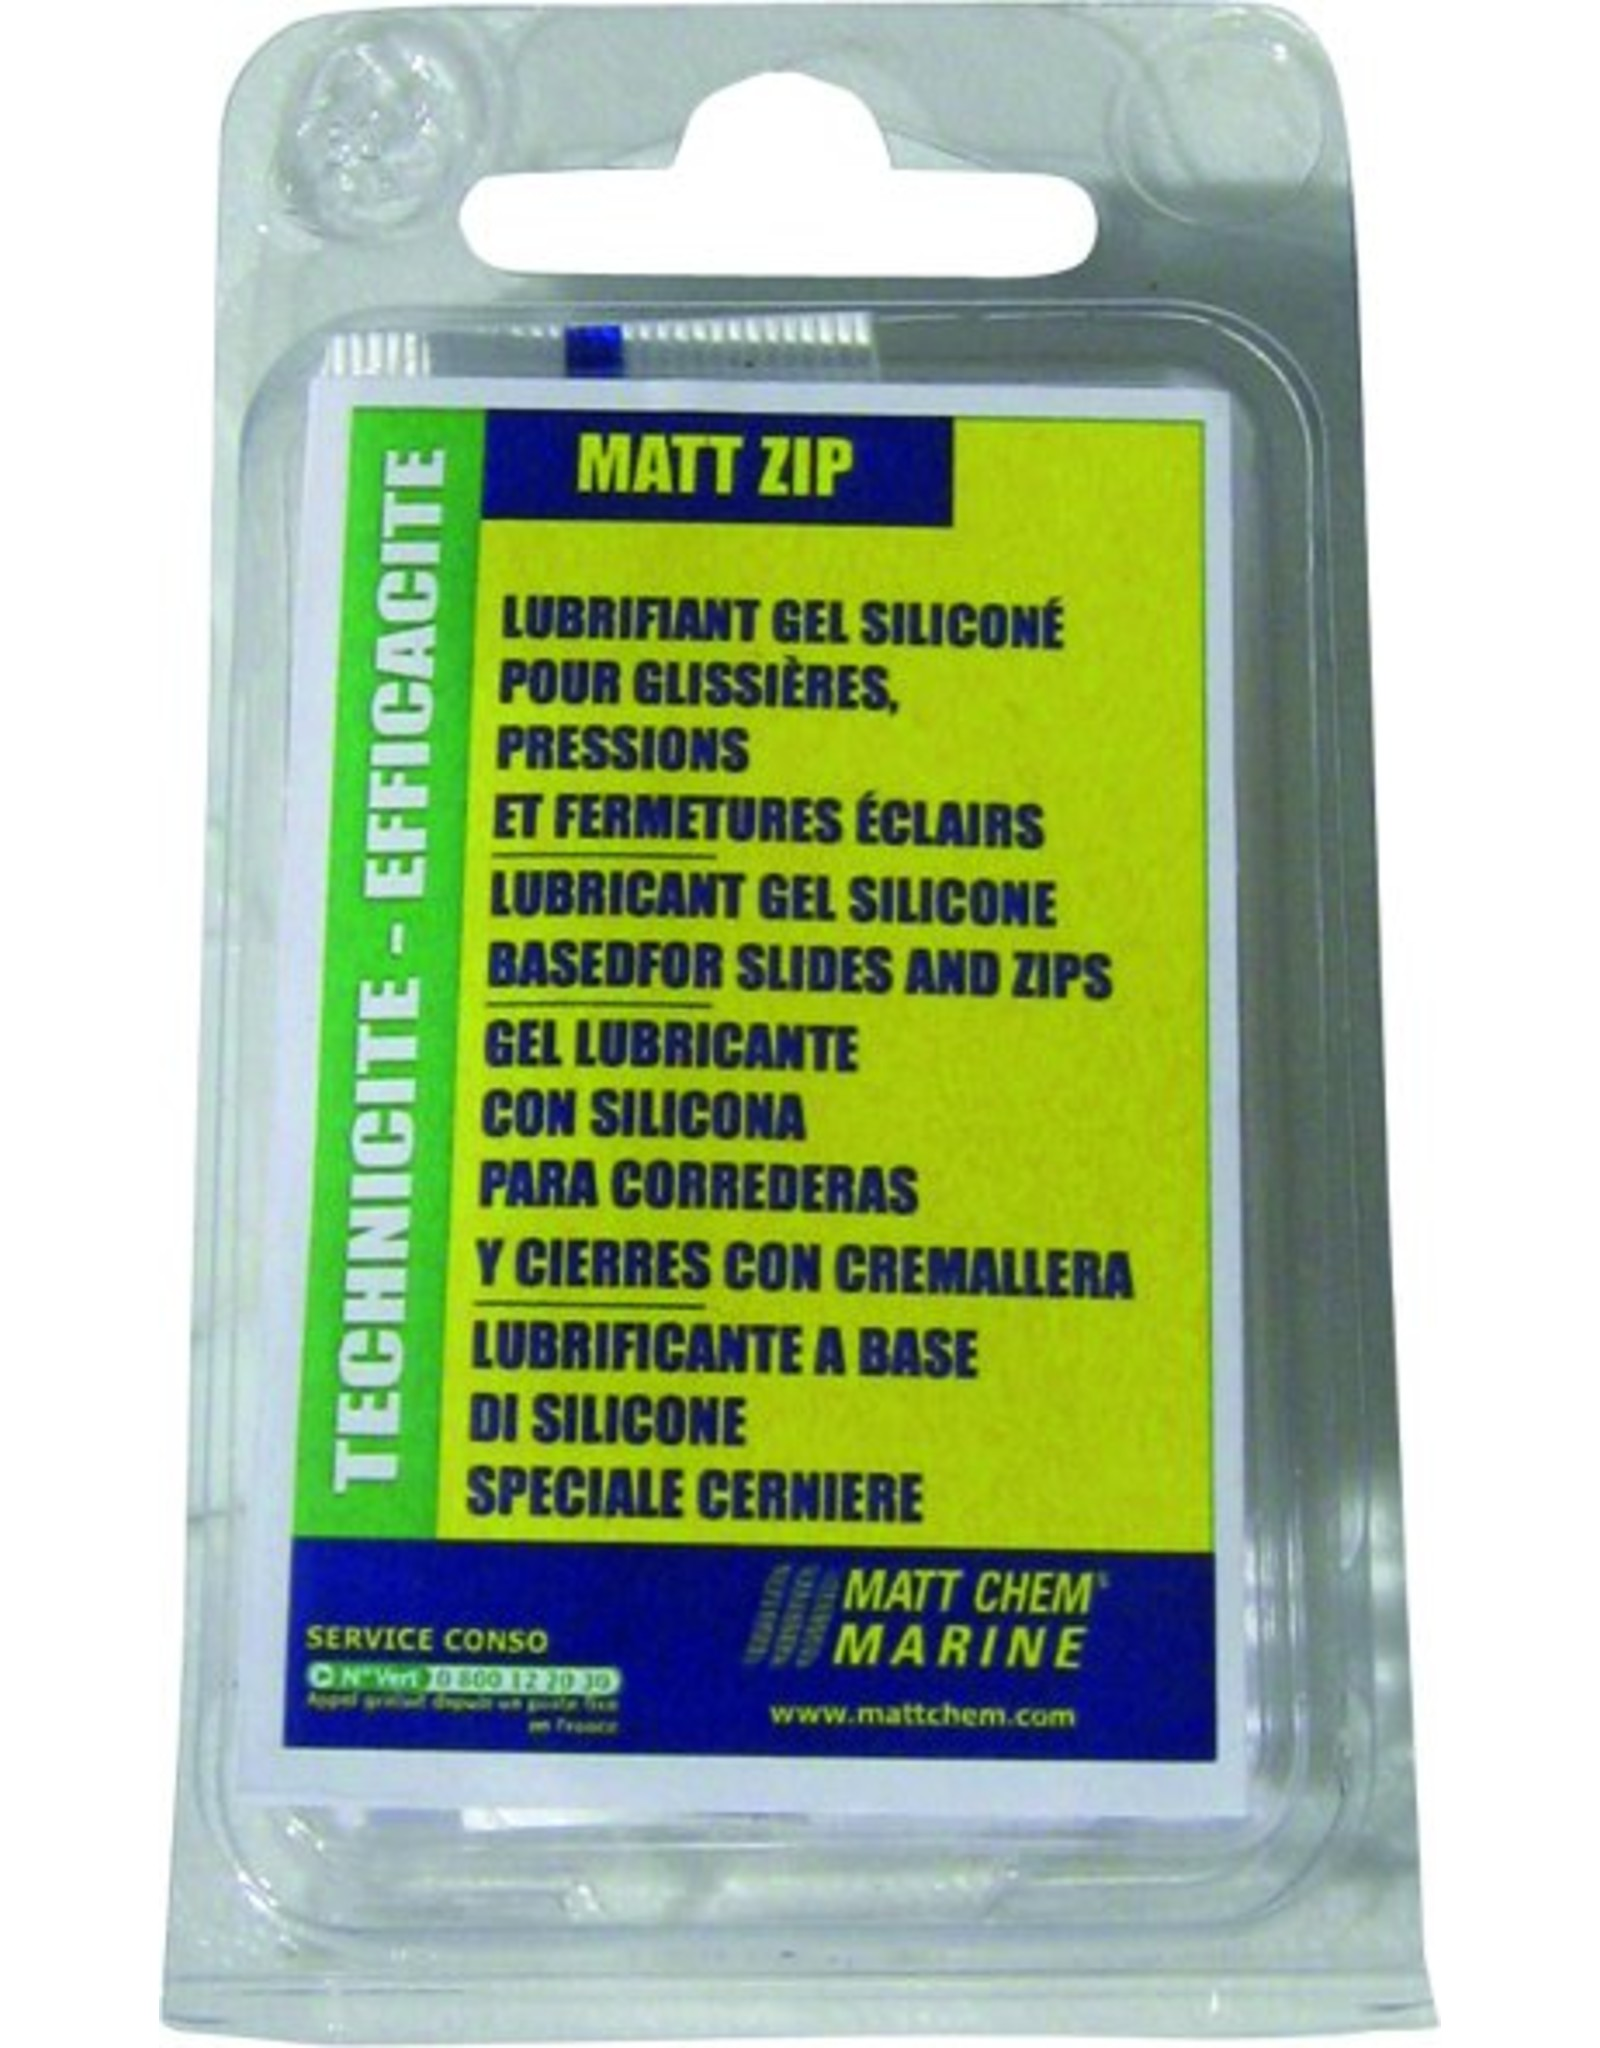 Matt Chem Marine MATT ZIP 10g